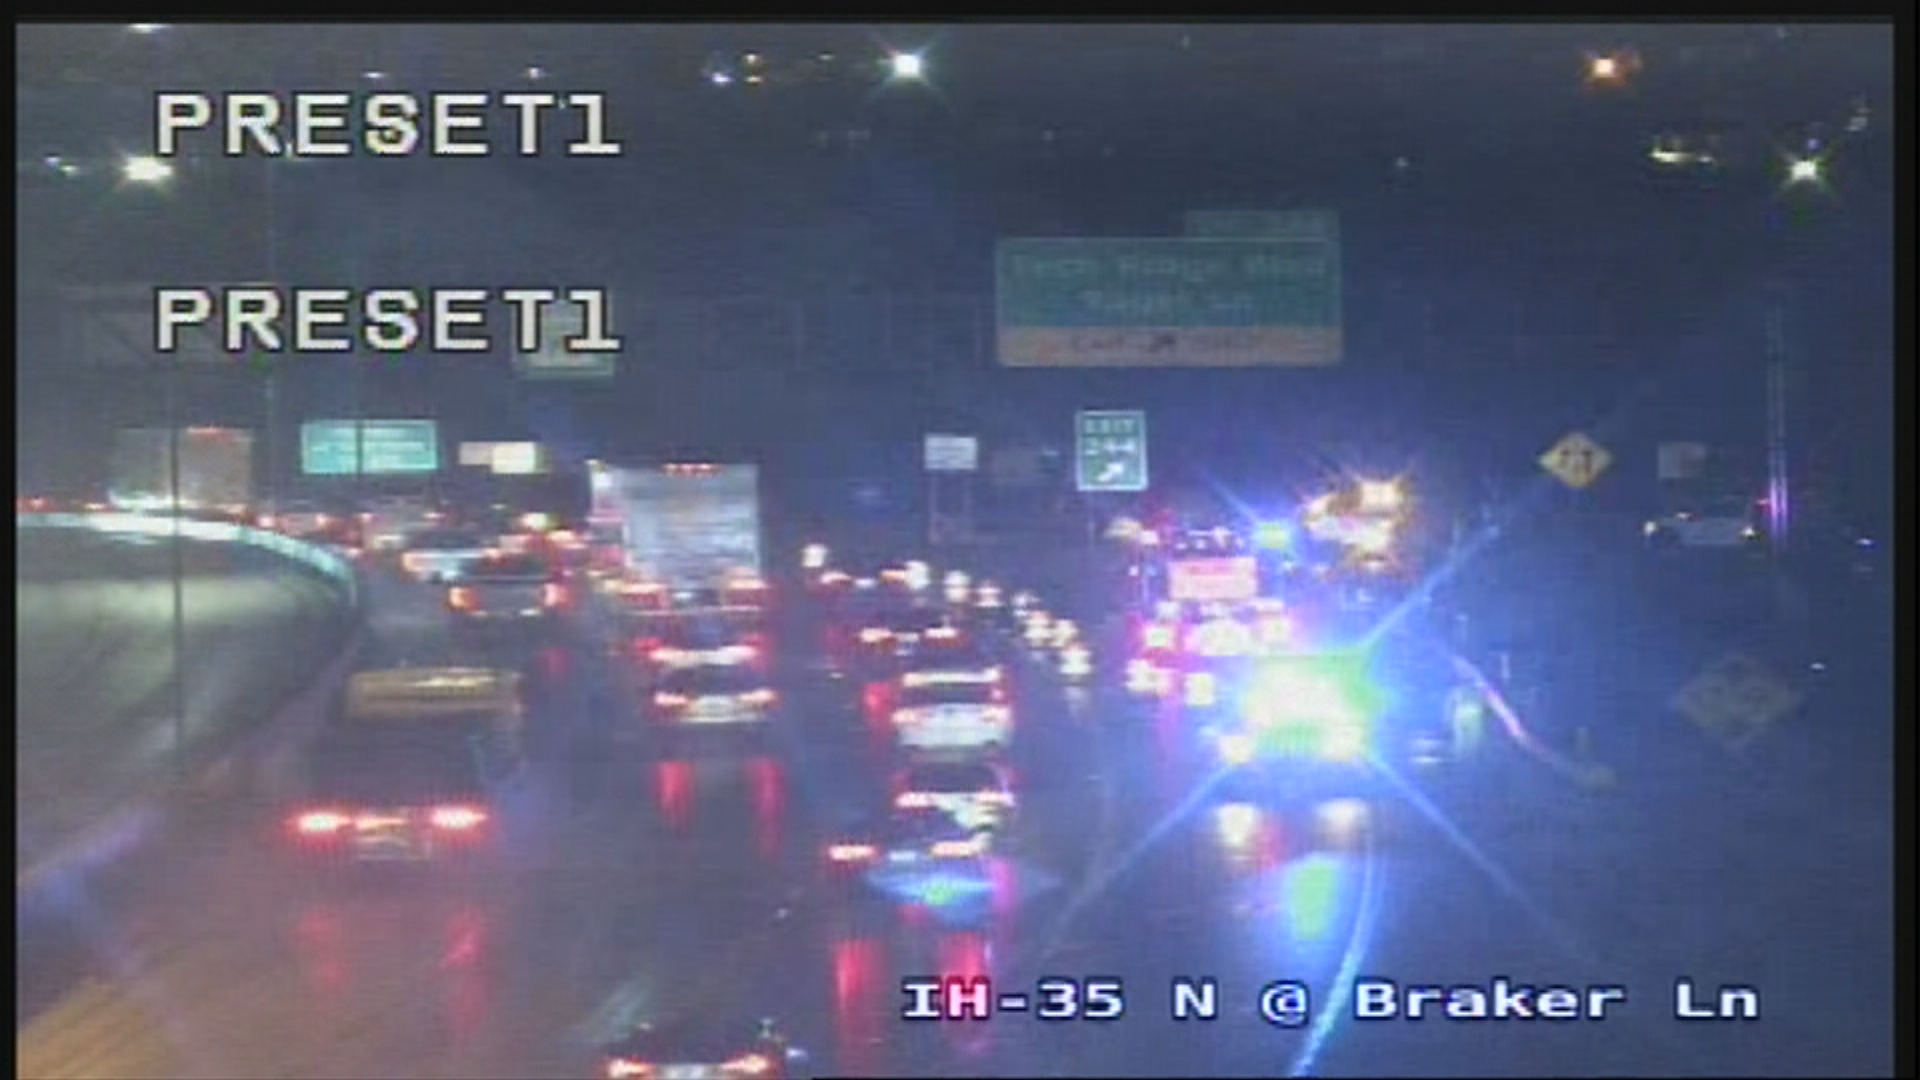 Fatal crash shuts down traffic on I-35 northbound frontage road at Braker Lane (TxDOT Photo)